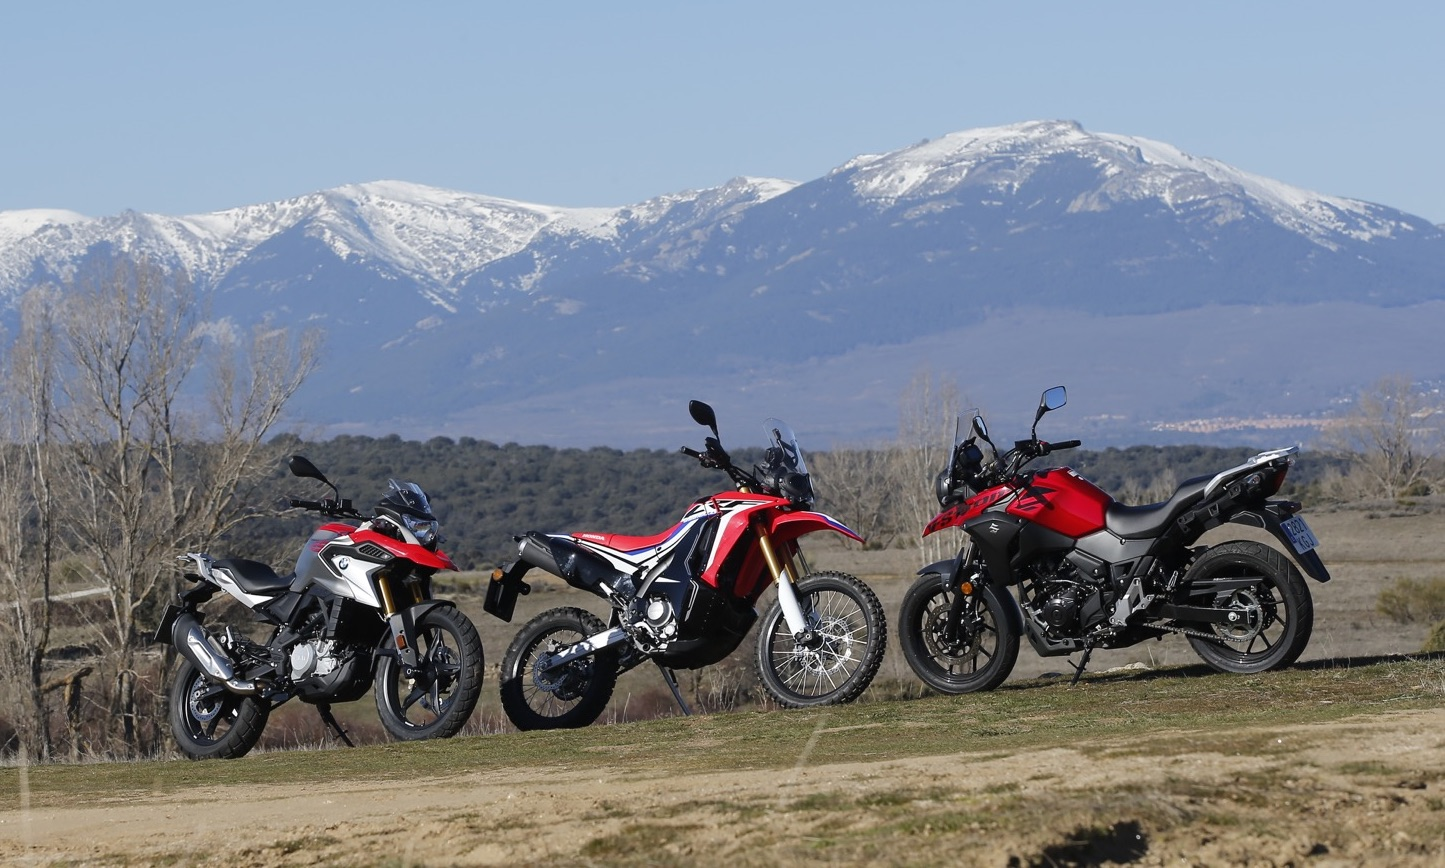 Comparativa trail: BMW G 310 GS vs. Honda CRF250 rally vs. Suzuki V-Strom 250